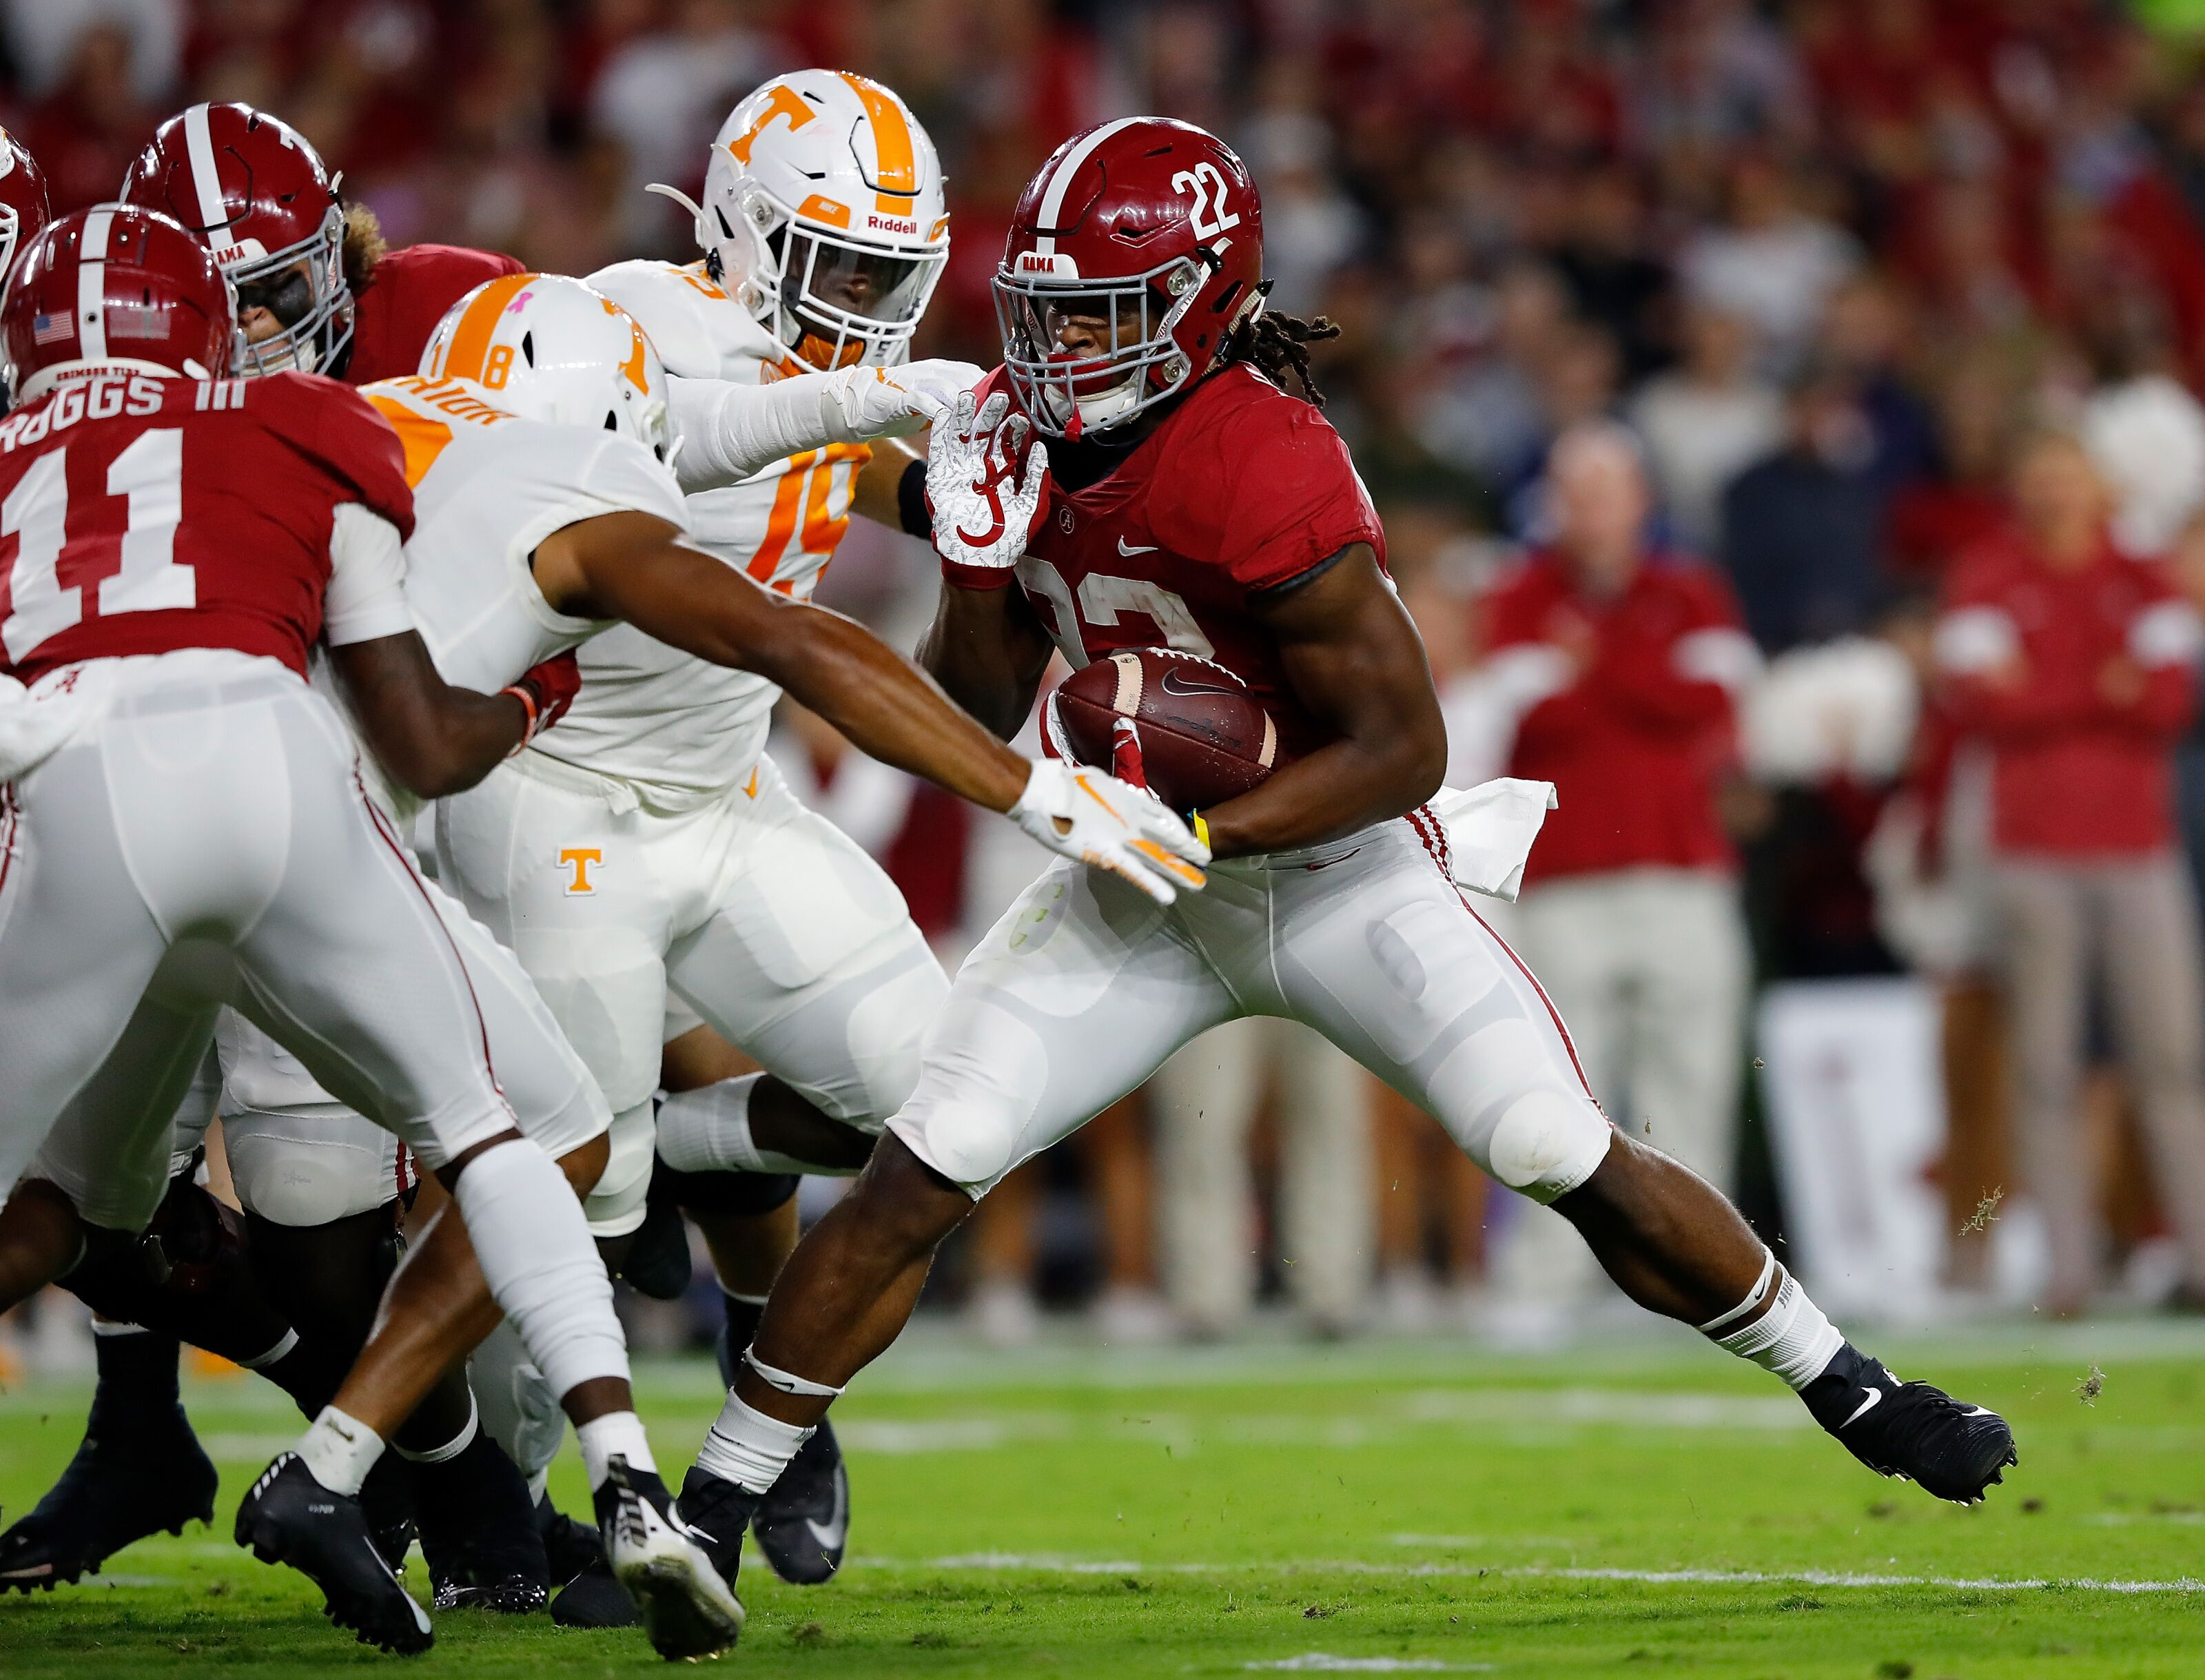 Tennessee football: Photo gallery from Vols 35-13 loss at Alabama